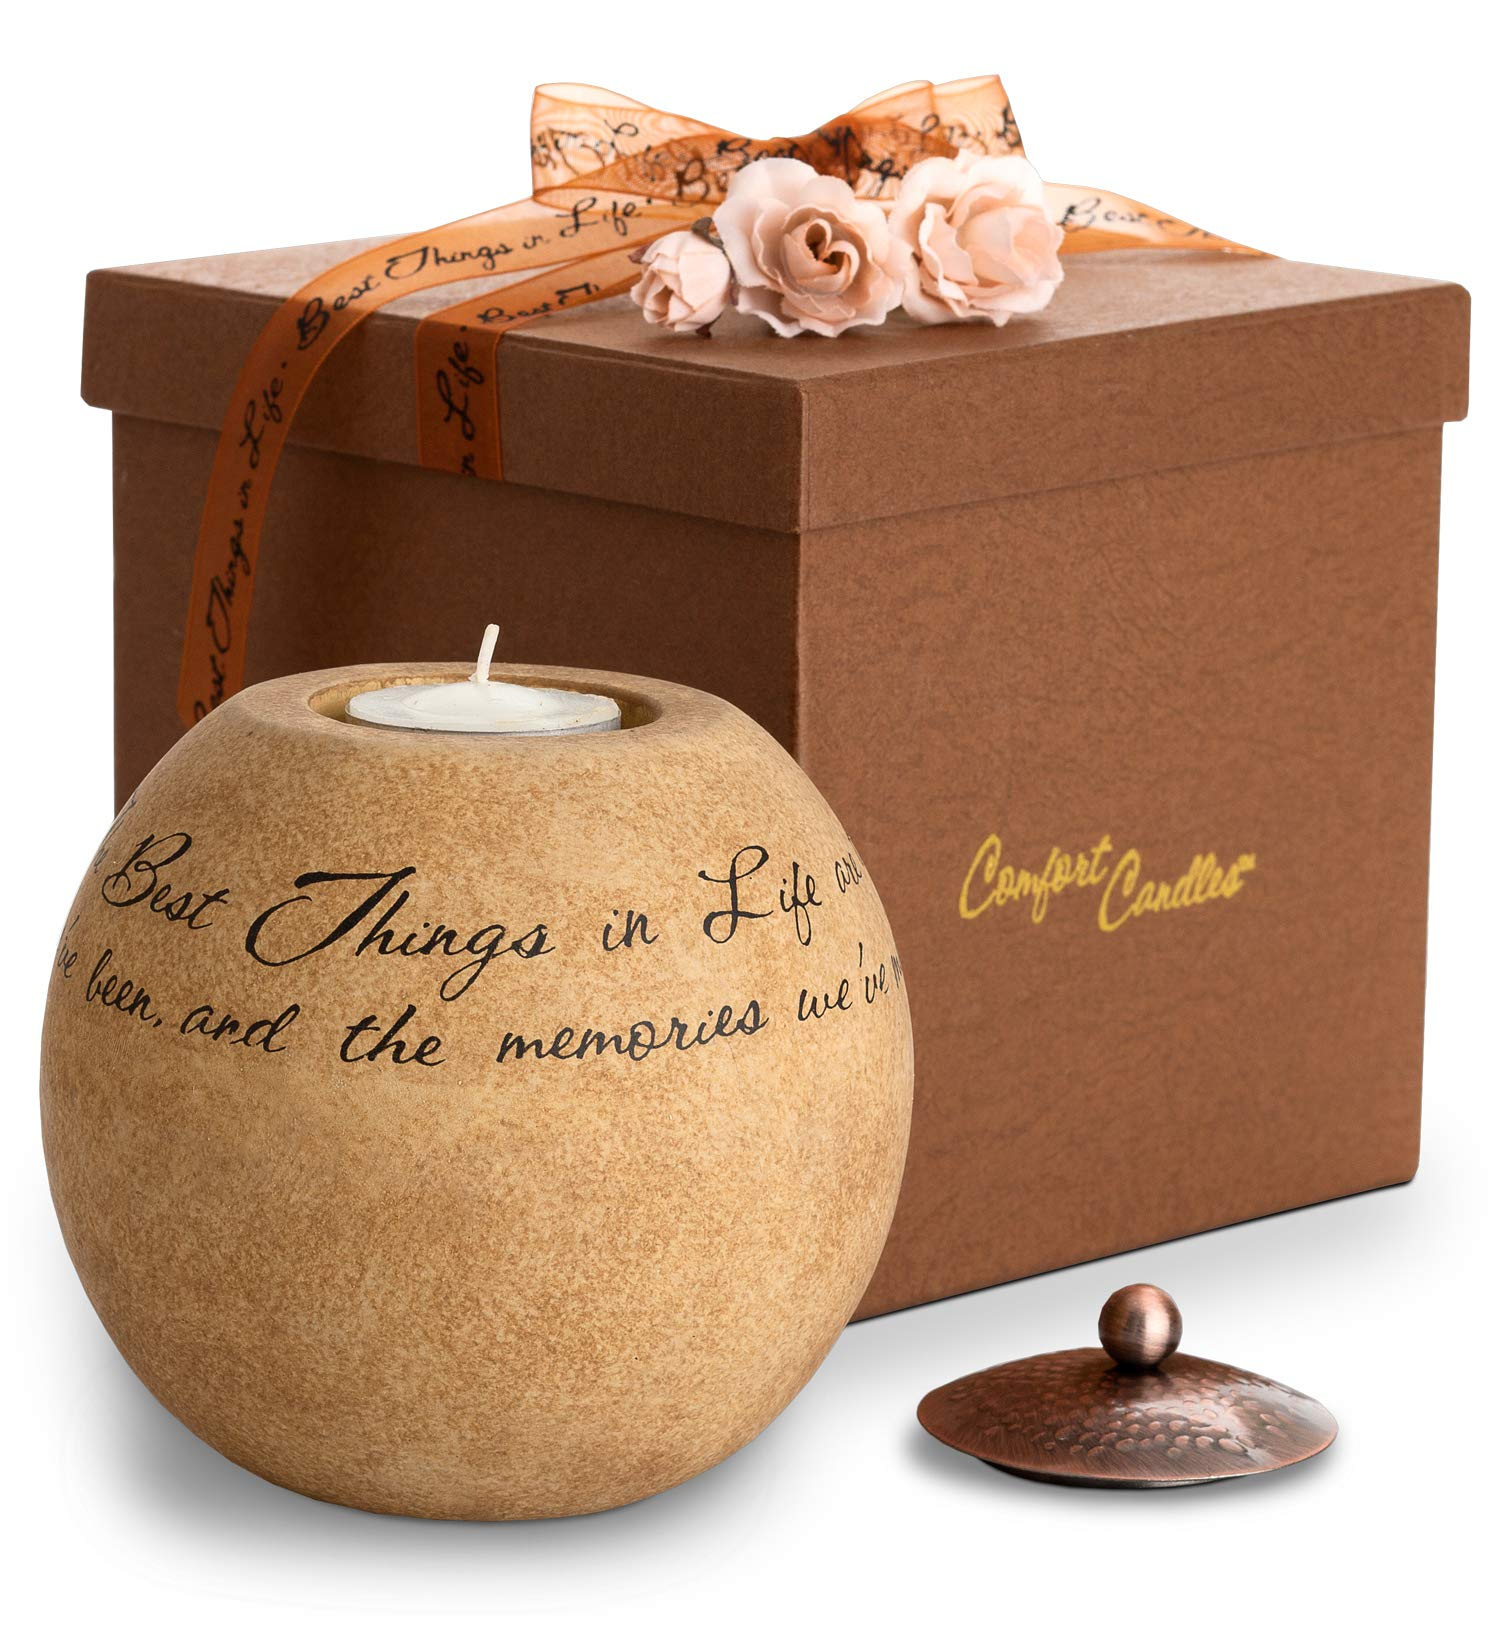 GiftTree Comfort Candle | The Best Things In Life Keepsake Unscented Tea Light Candle Holder | Engraved with Inspirational Message | Perfect Home Décor or Gift for Birthday, Housewarming, Sympathy by GiftTree